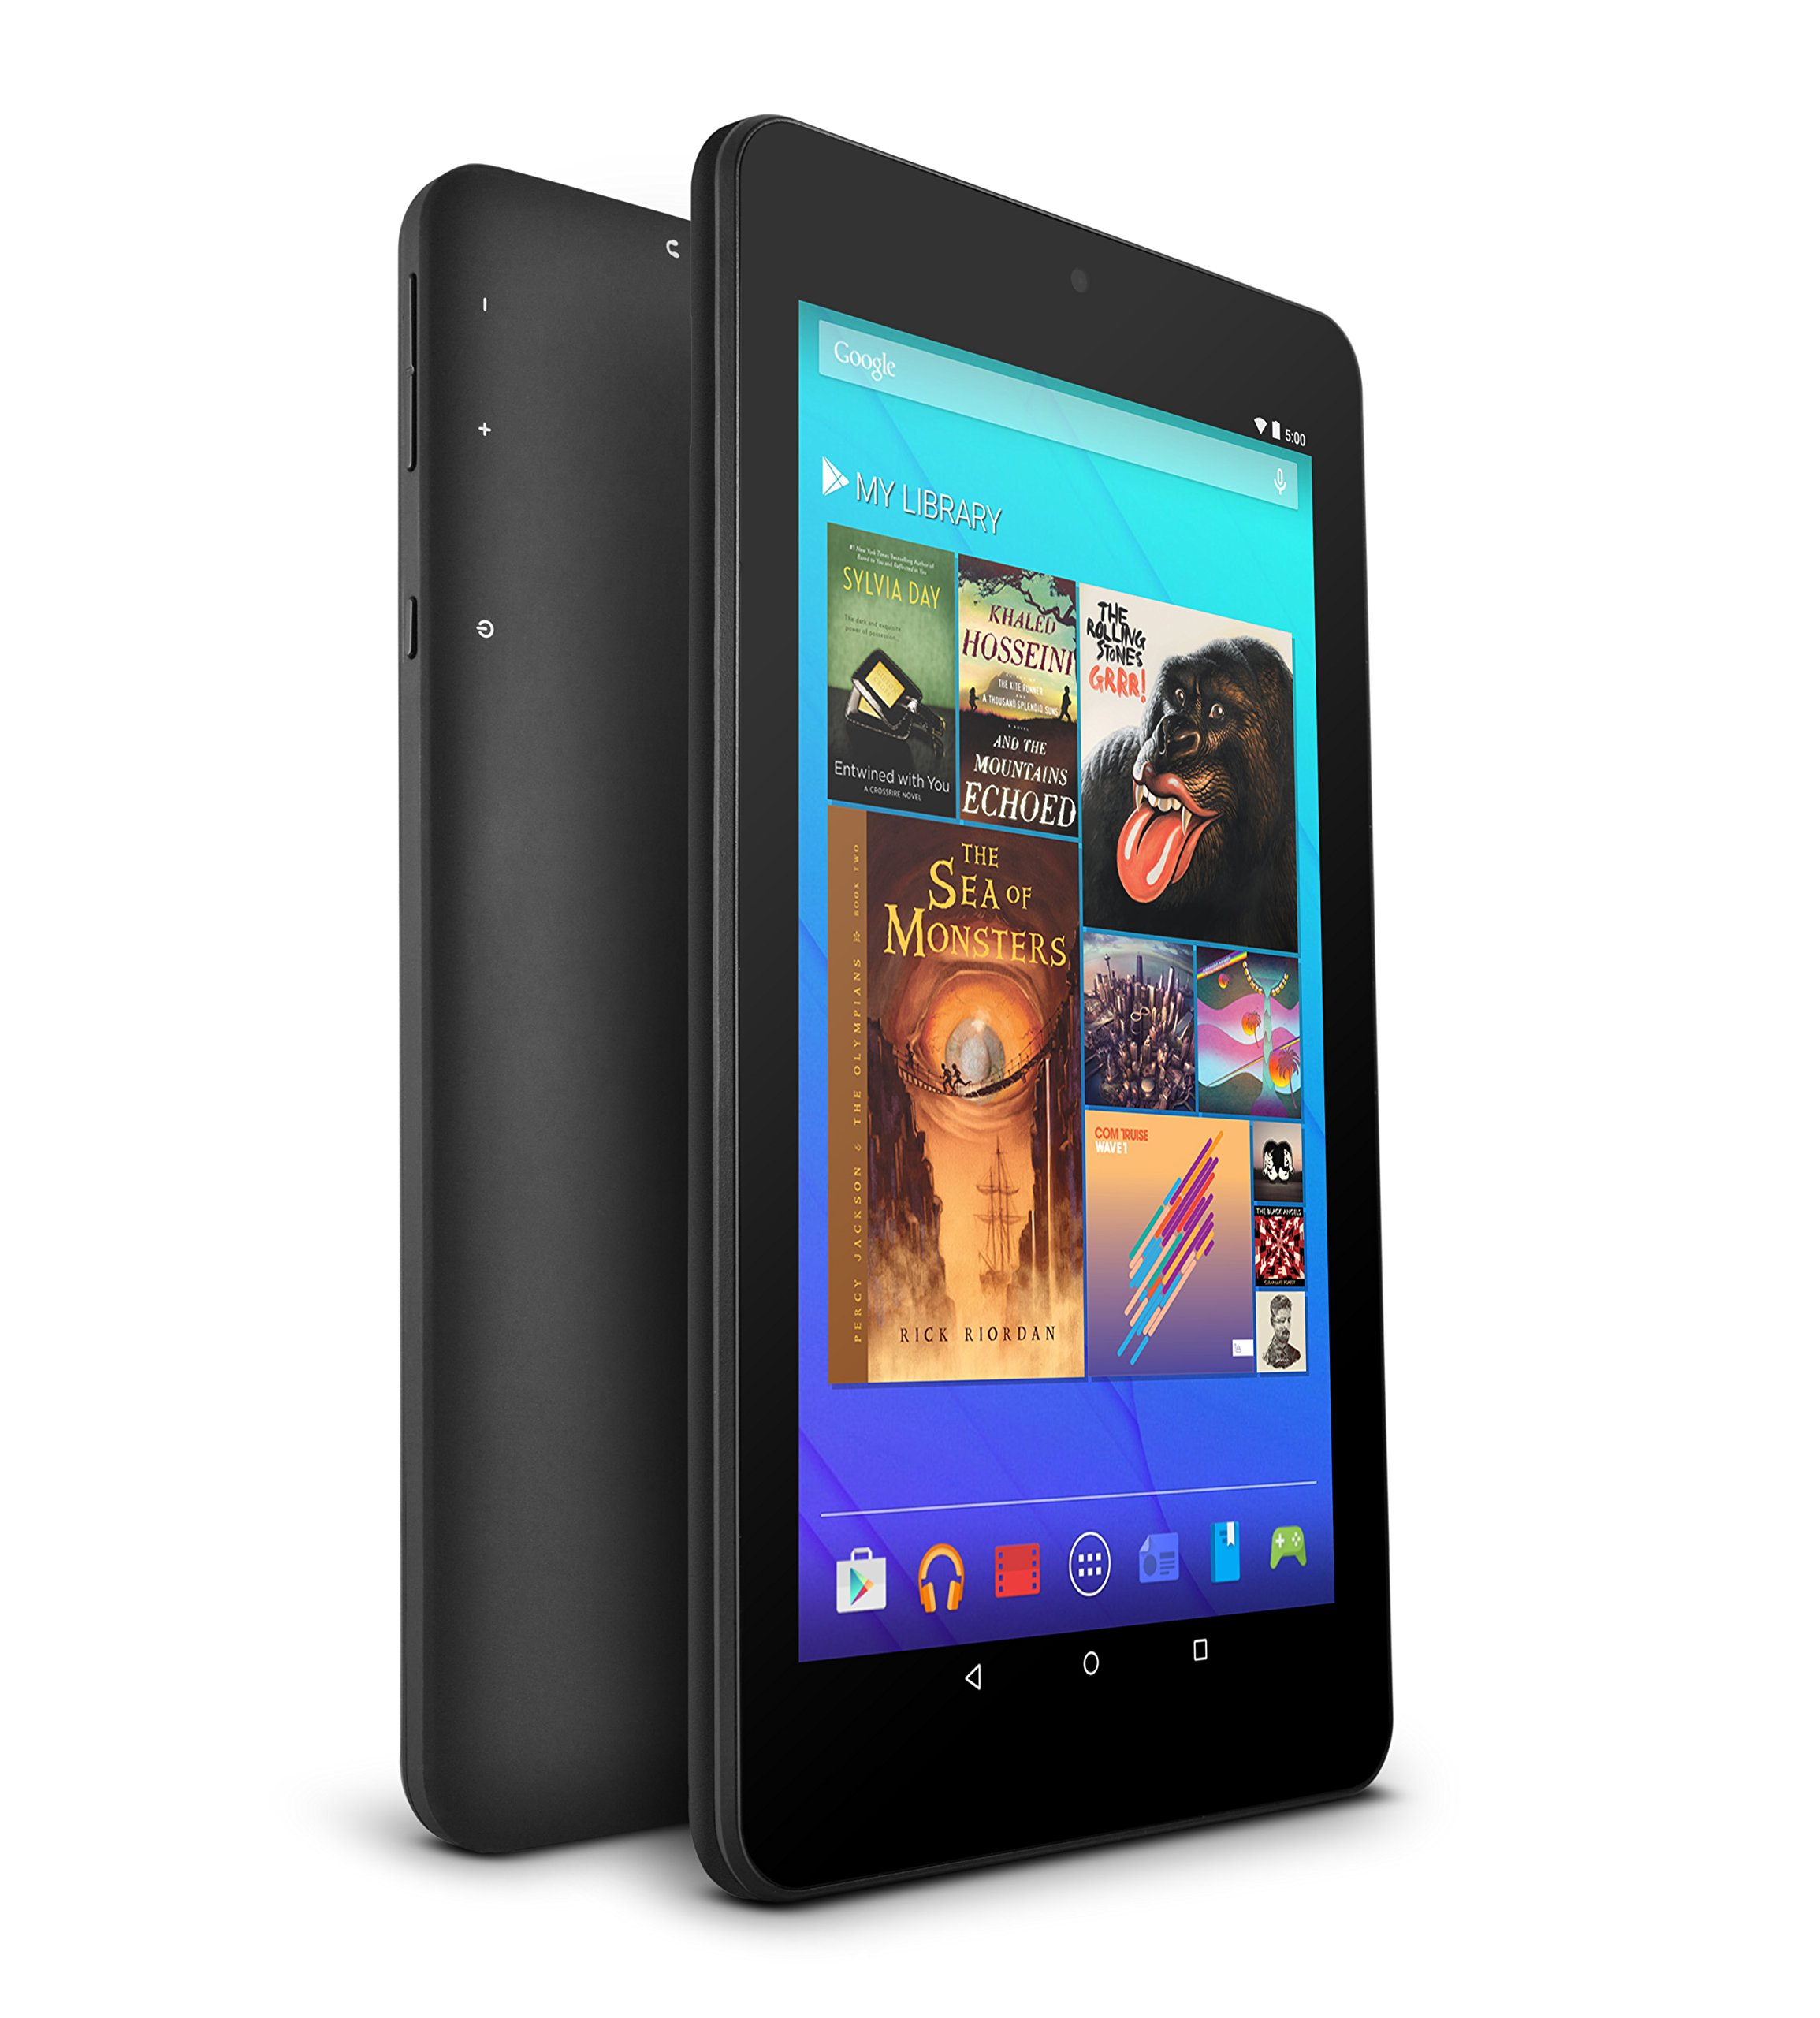 "Ematic 7"" Hd Quad-core Multi-touch Tablet With Android 5.0, Lollipop - Black (egq347bl)"